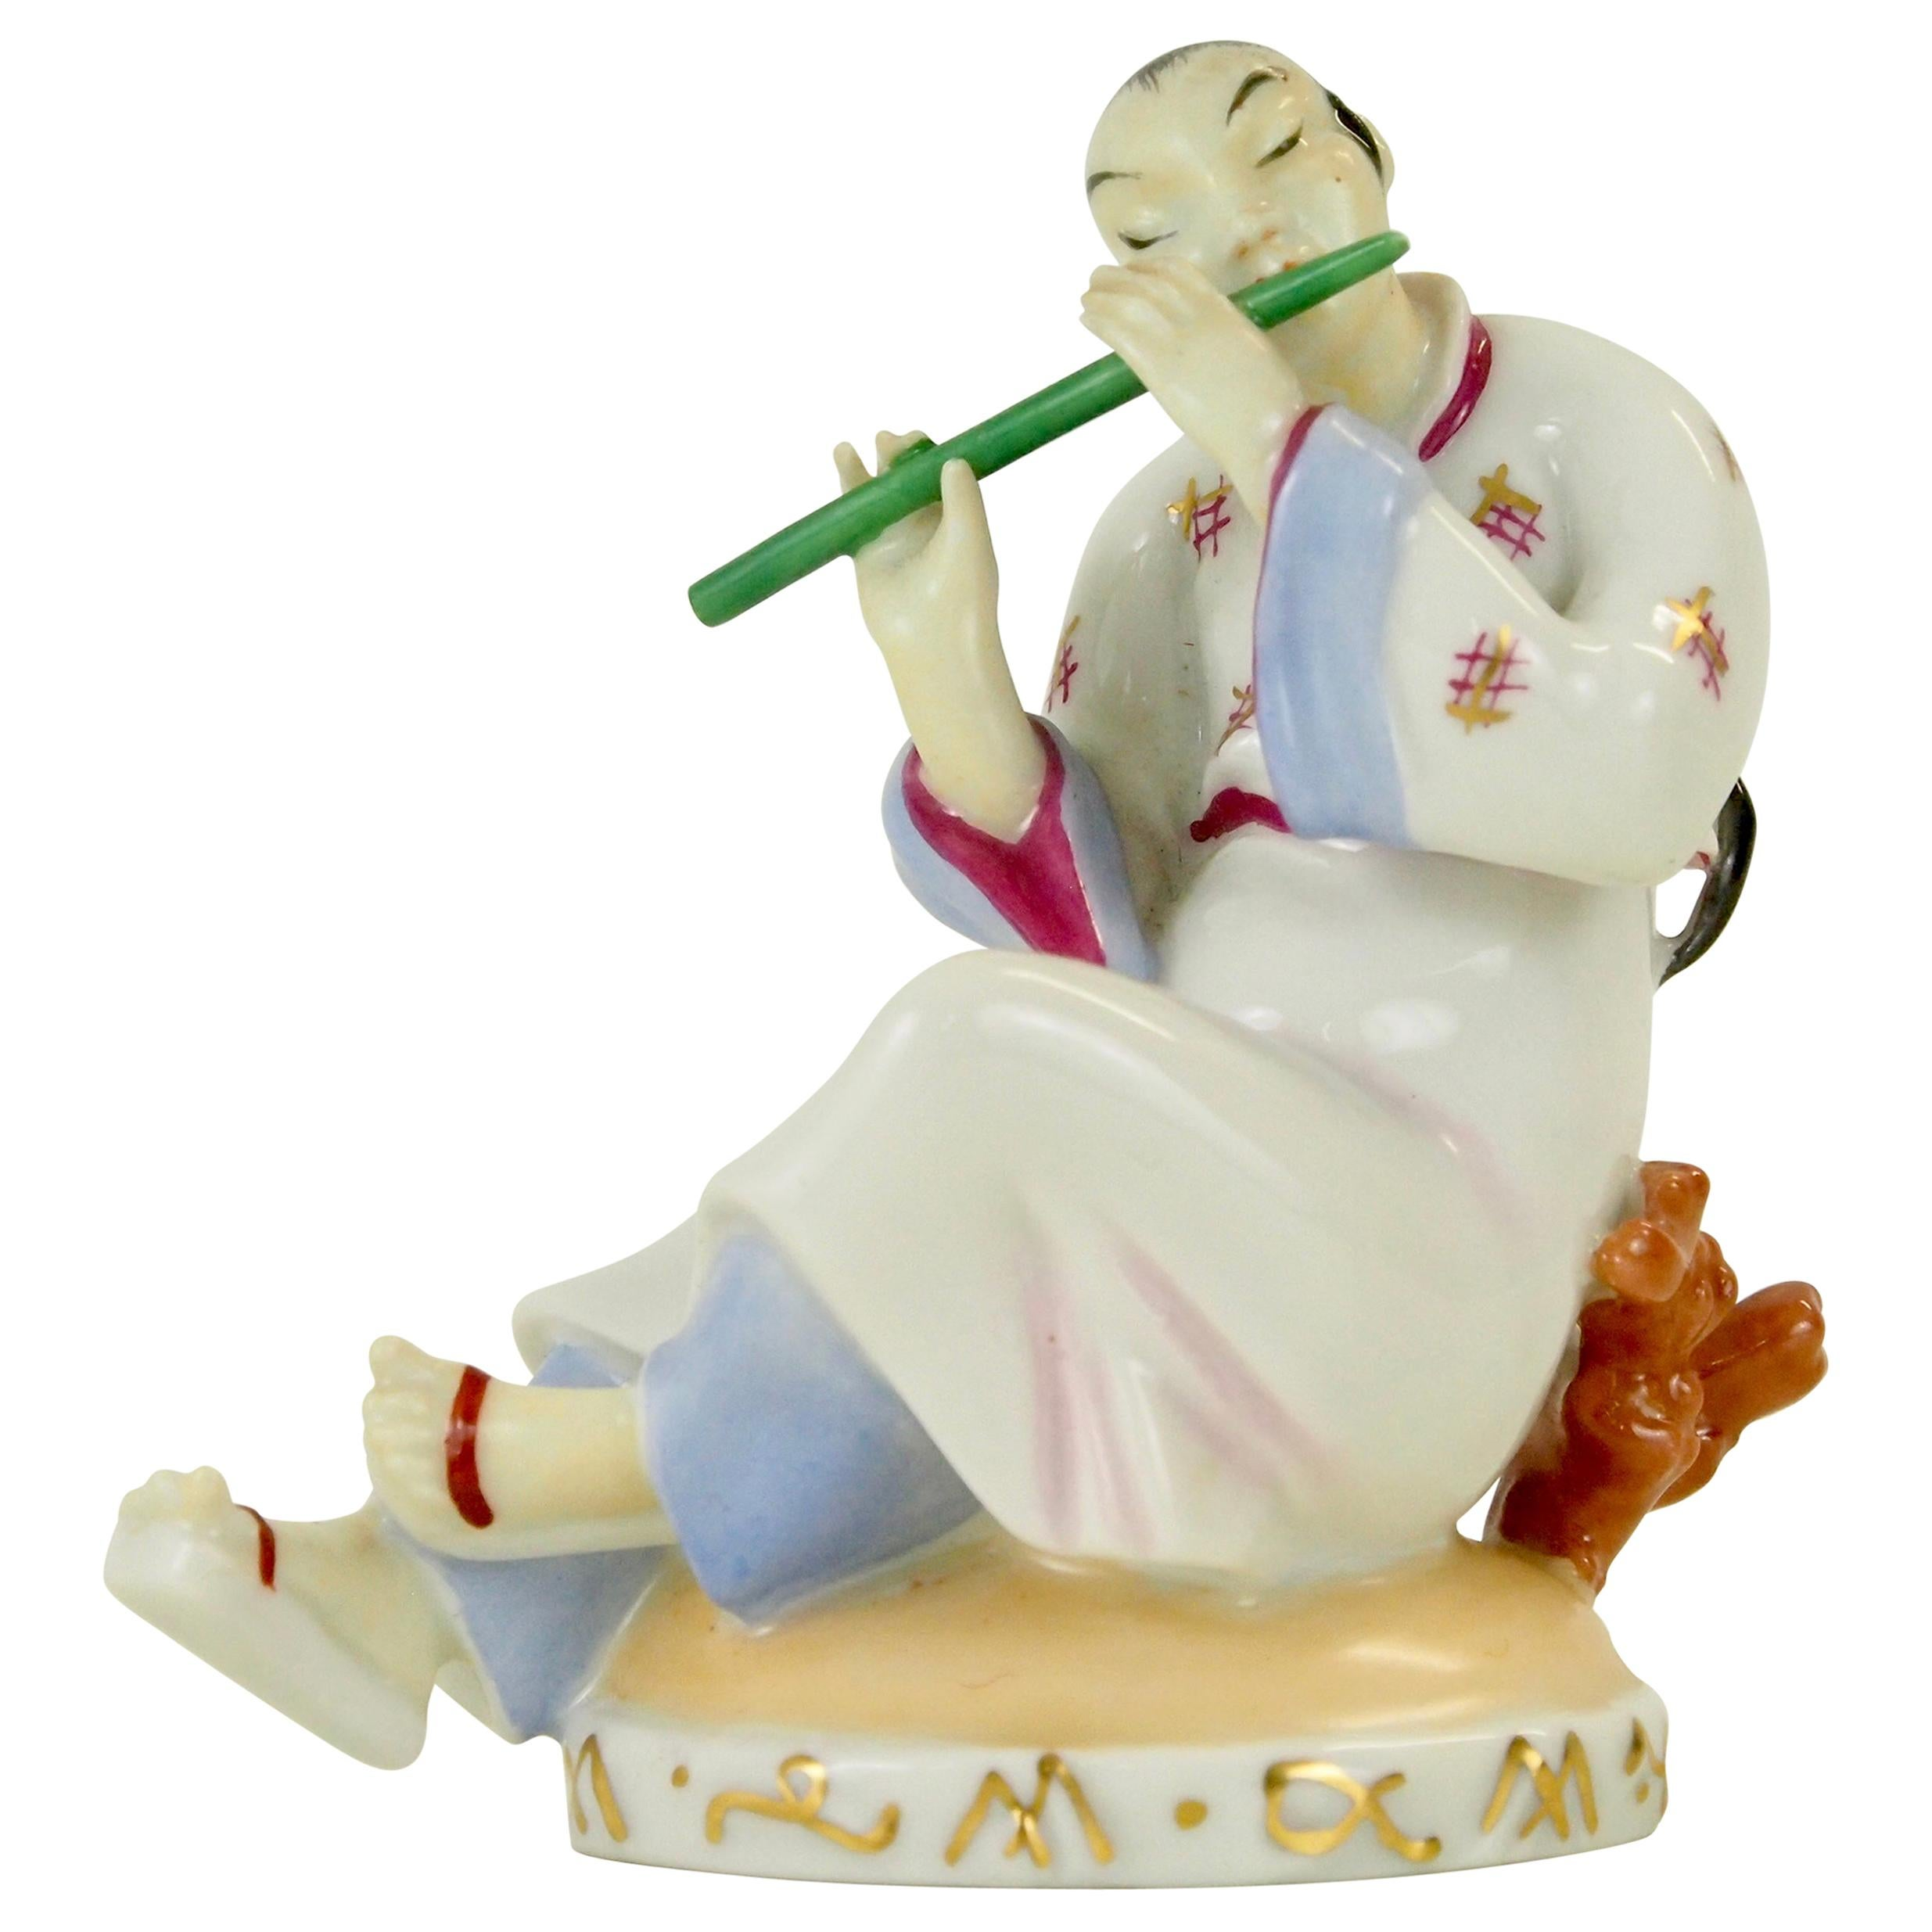 Augarten Wien Porcelain Figurine of a Chinese Man with Flute